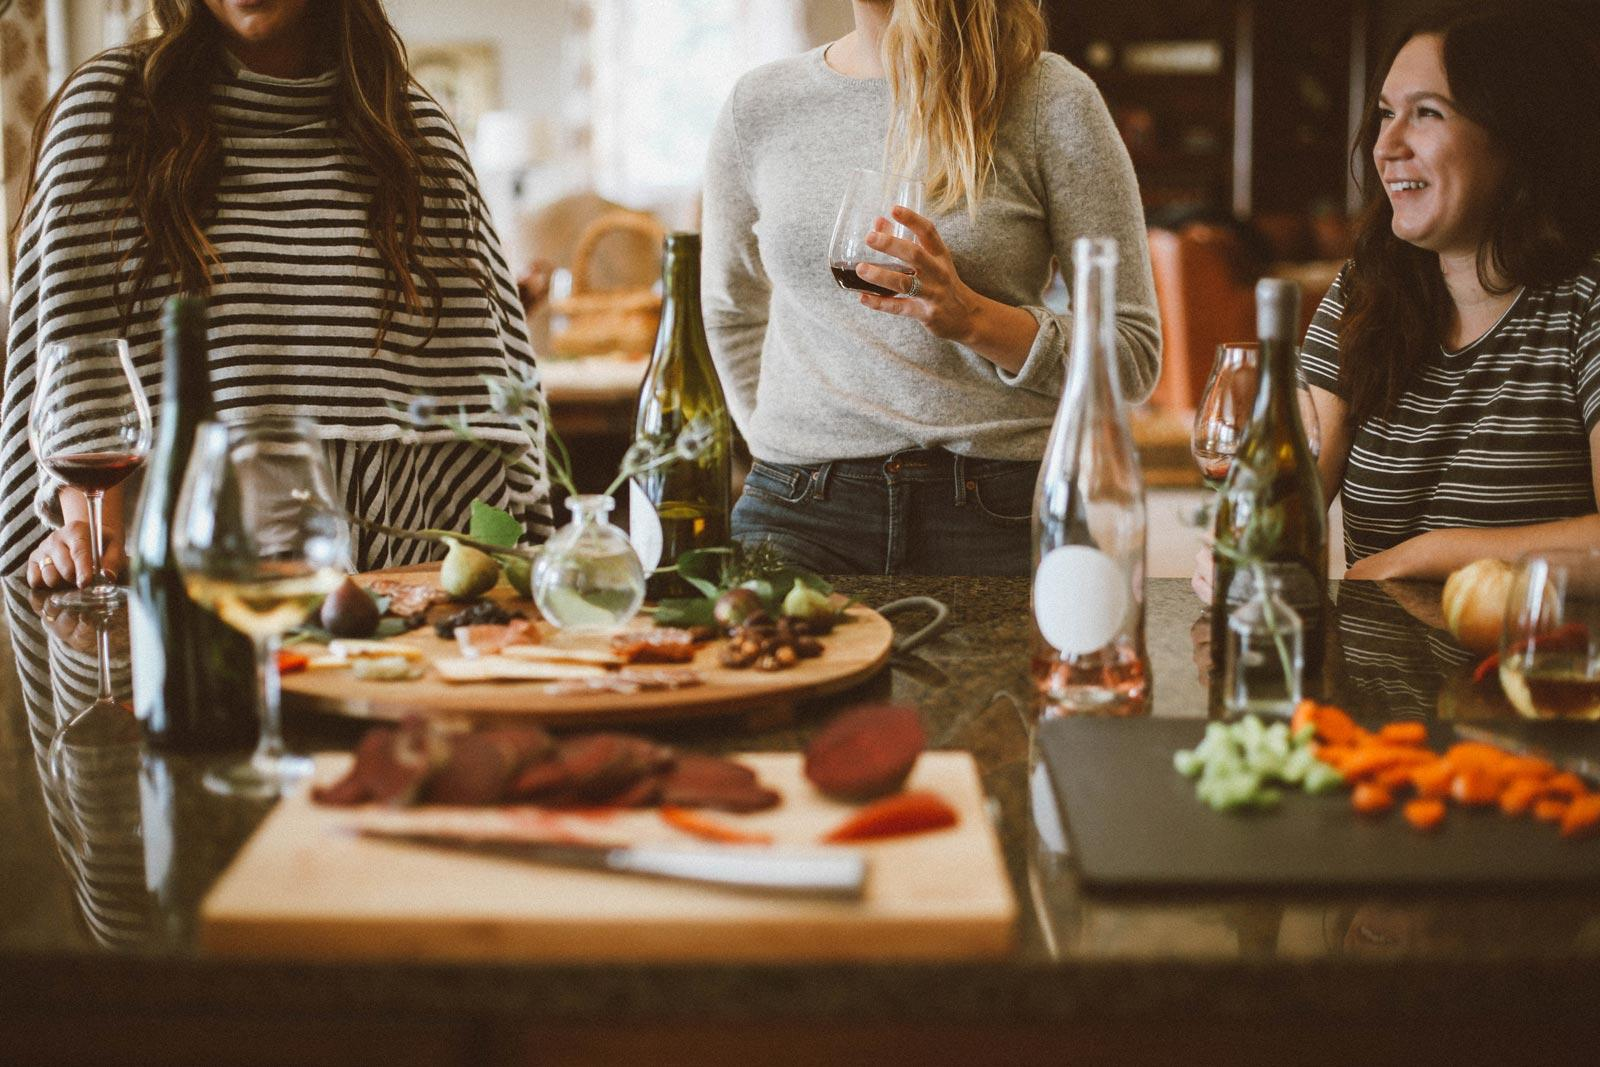 Candid shot of three smiling women in conversation, gathered around a table with glasses of wine and charcuterie